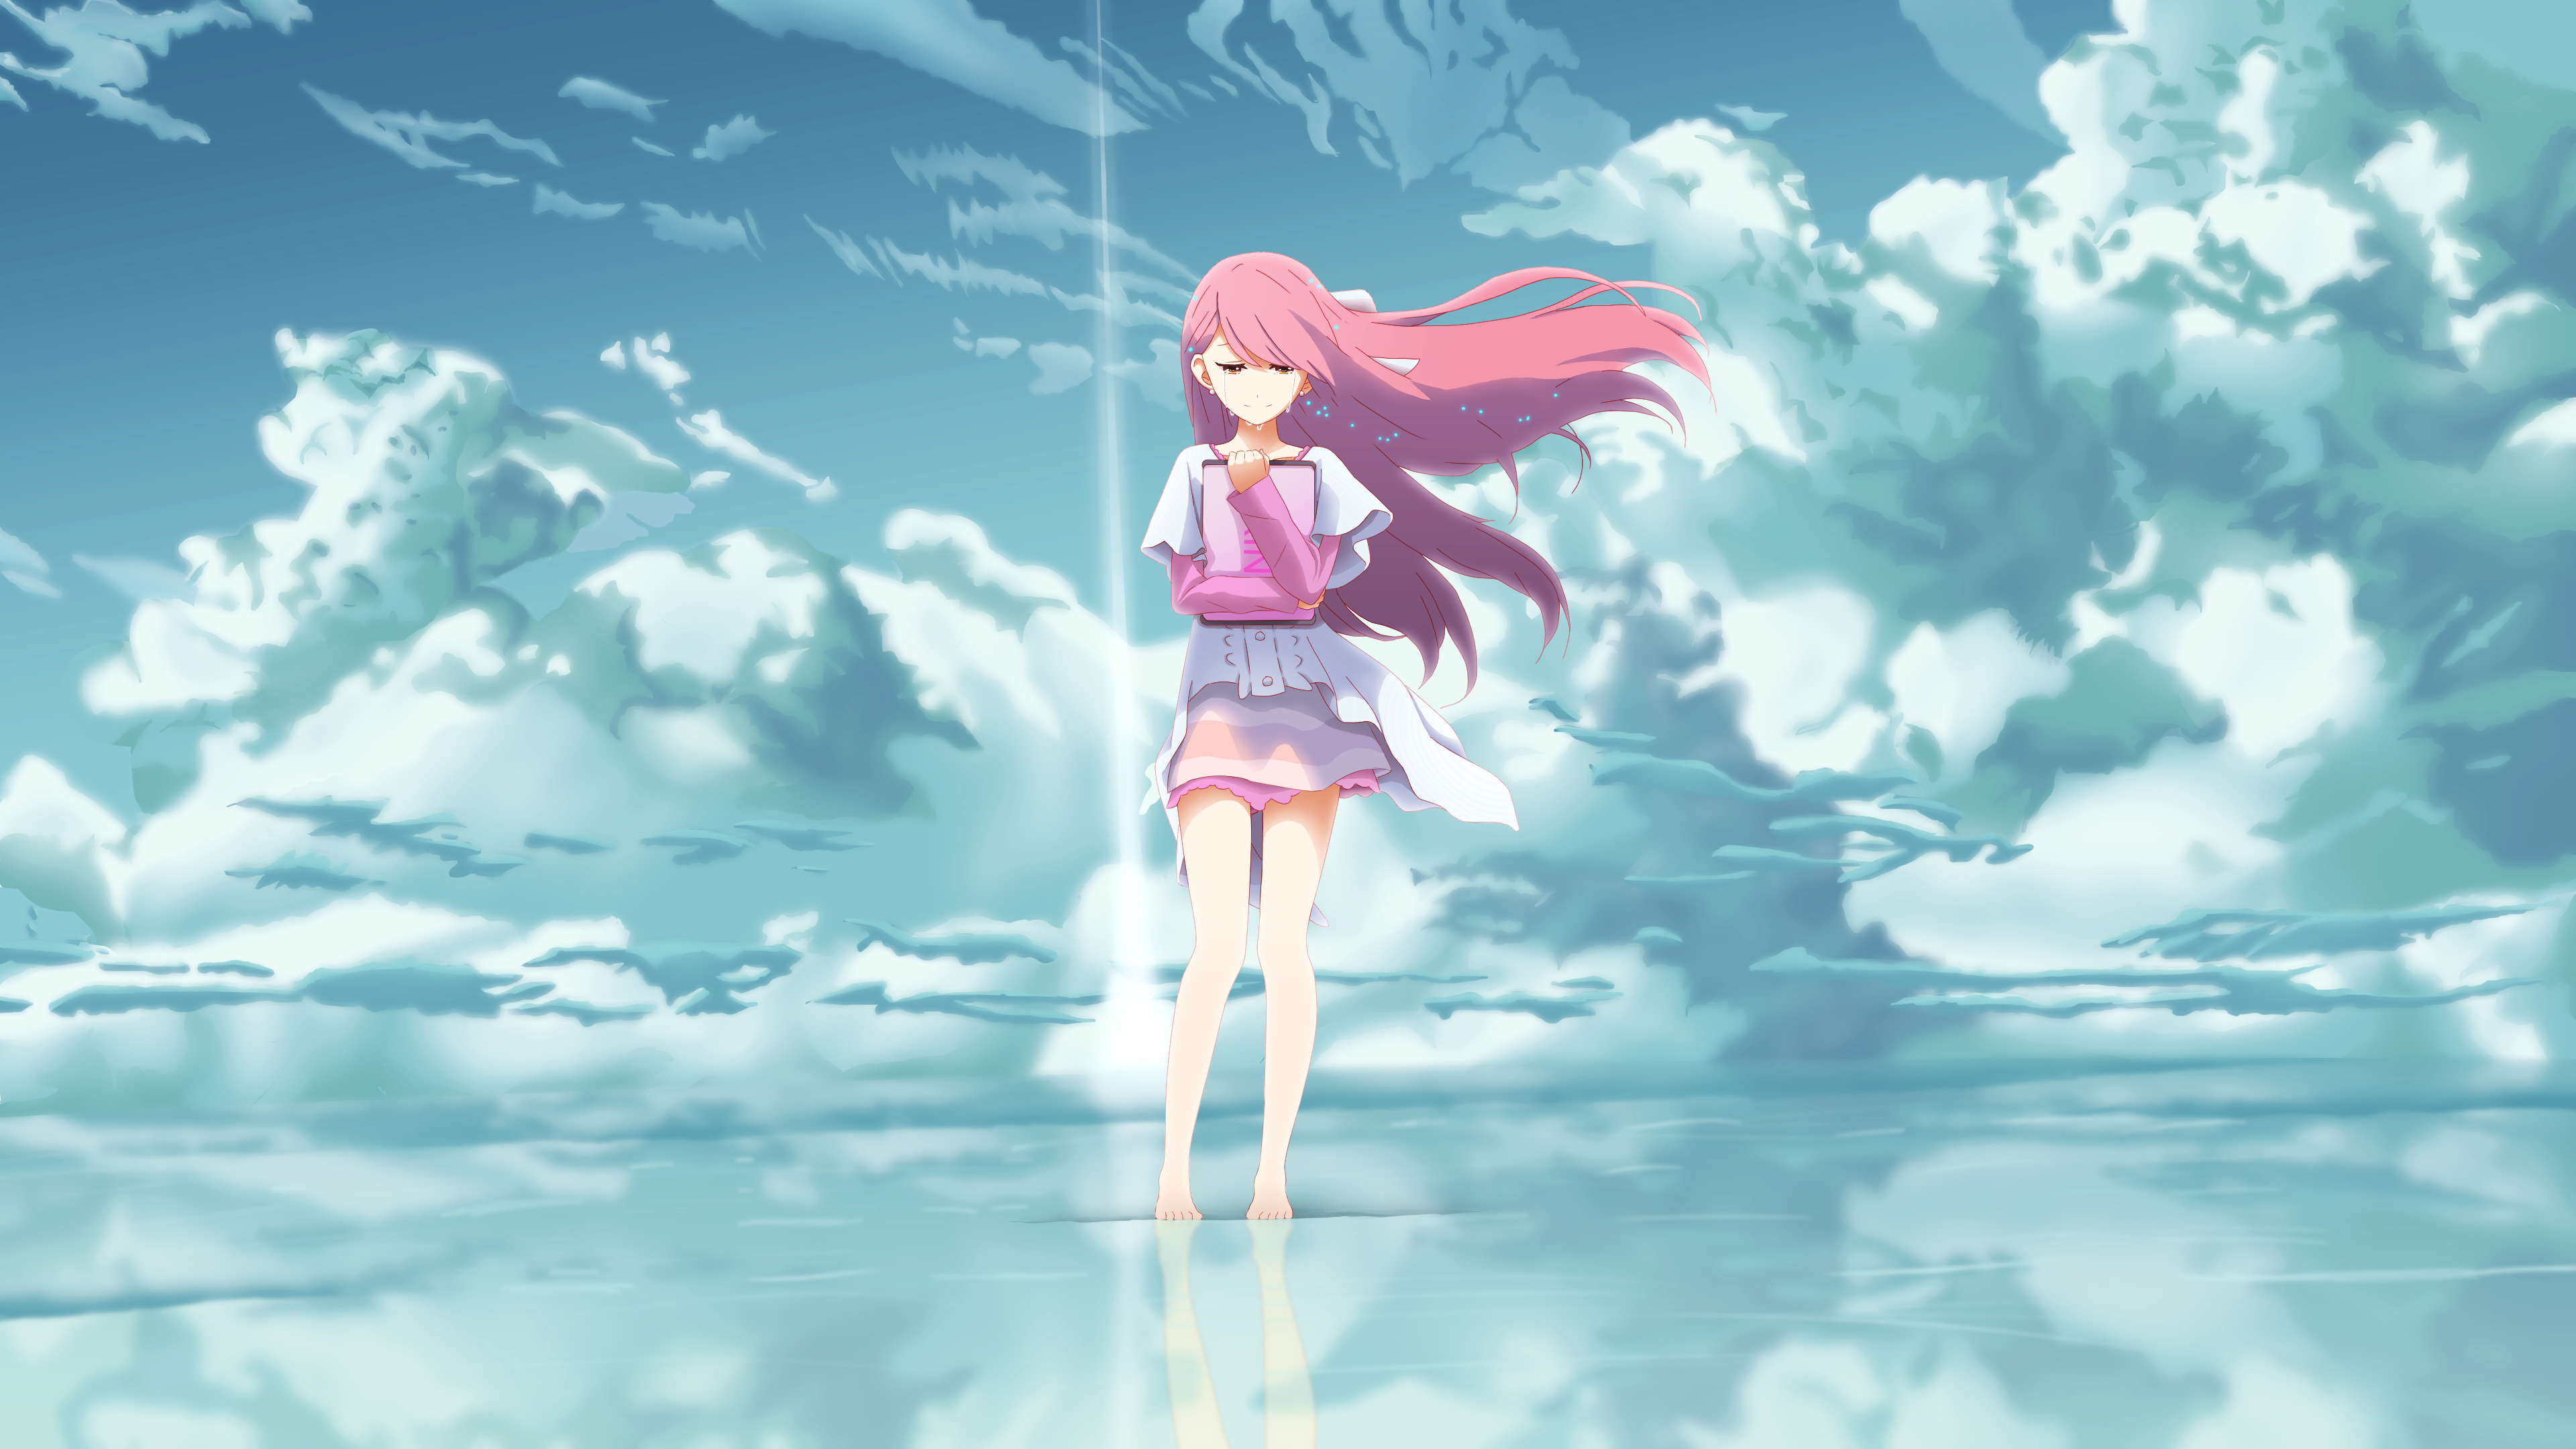 81 Rin Shelter Hd Wallpapers Background Images Wallpaper Abyss